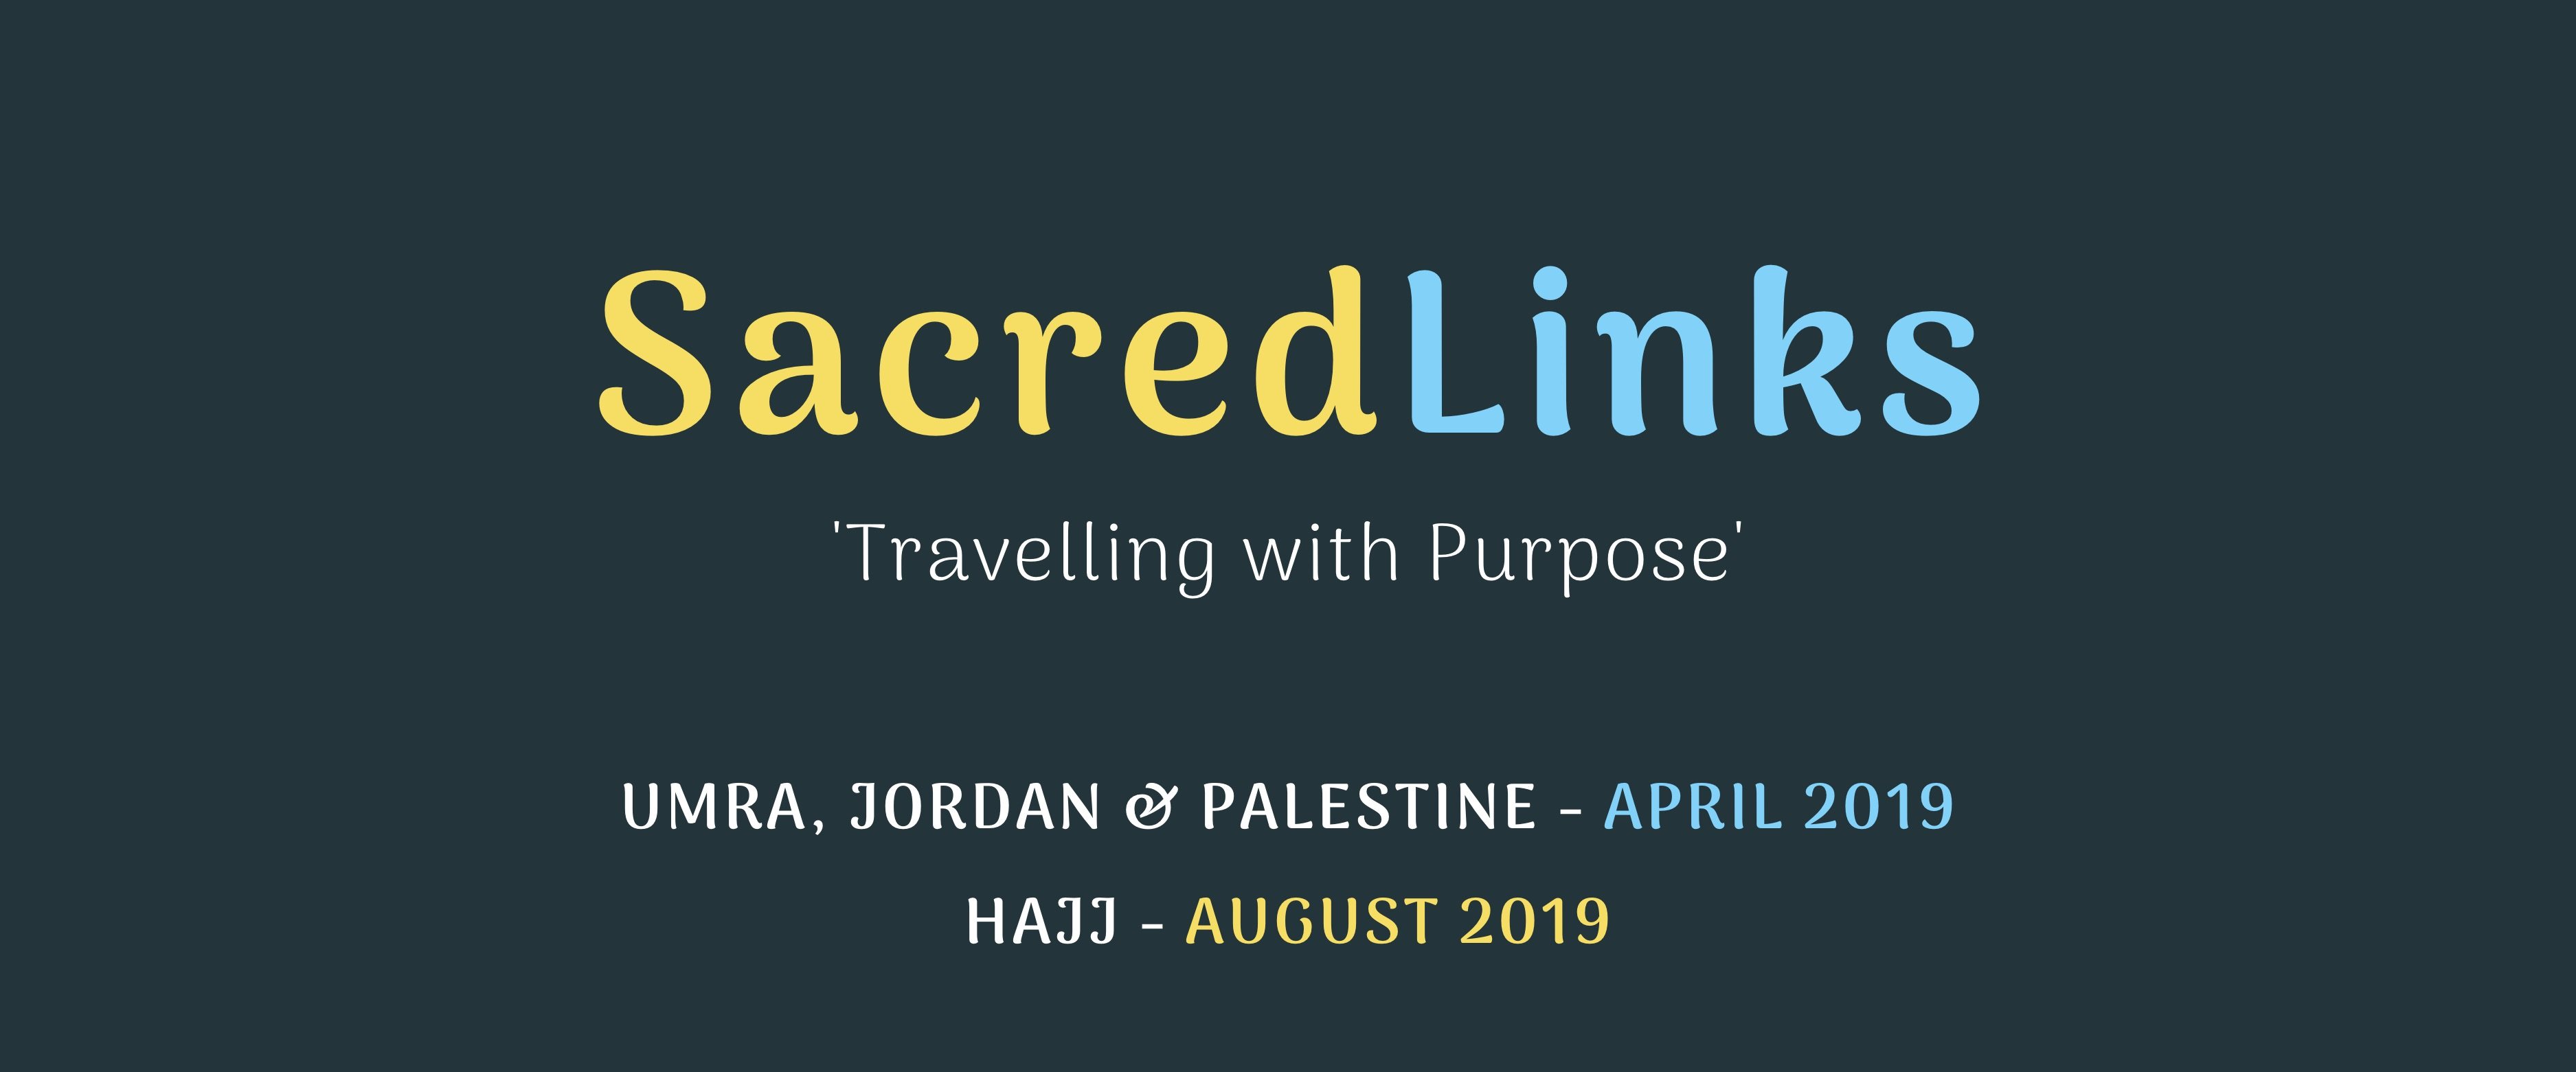 Sacred Links - Travelling with Purpose